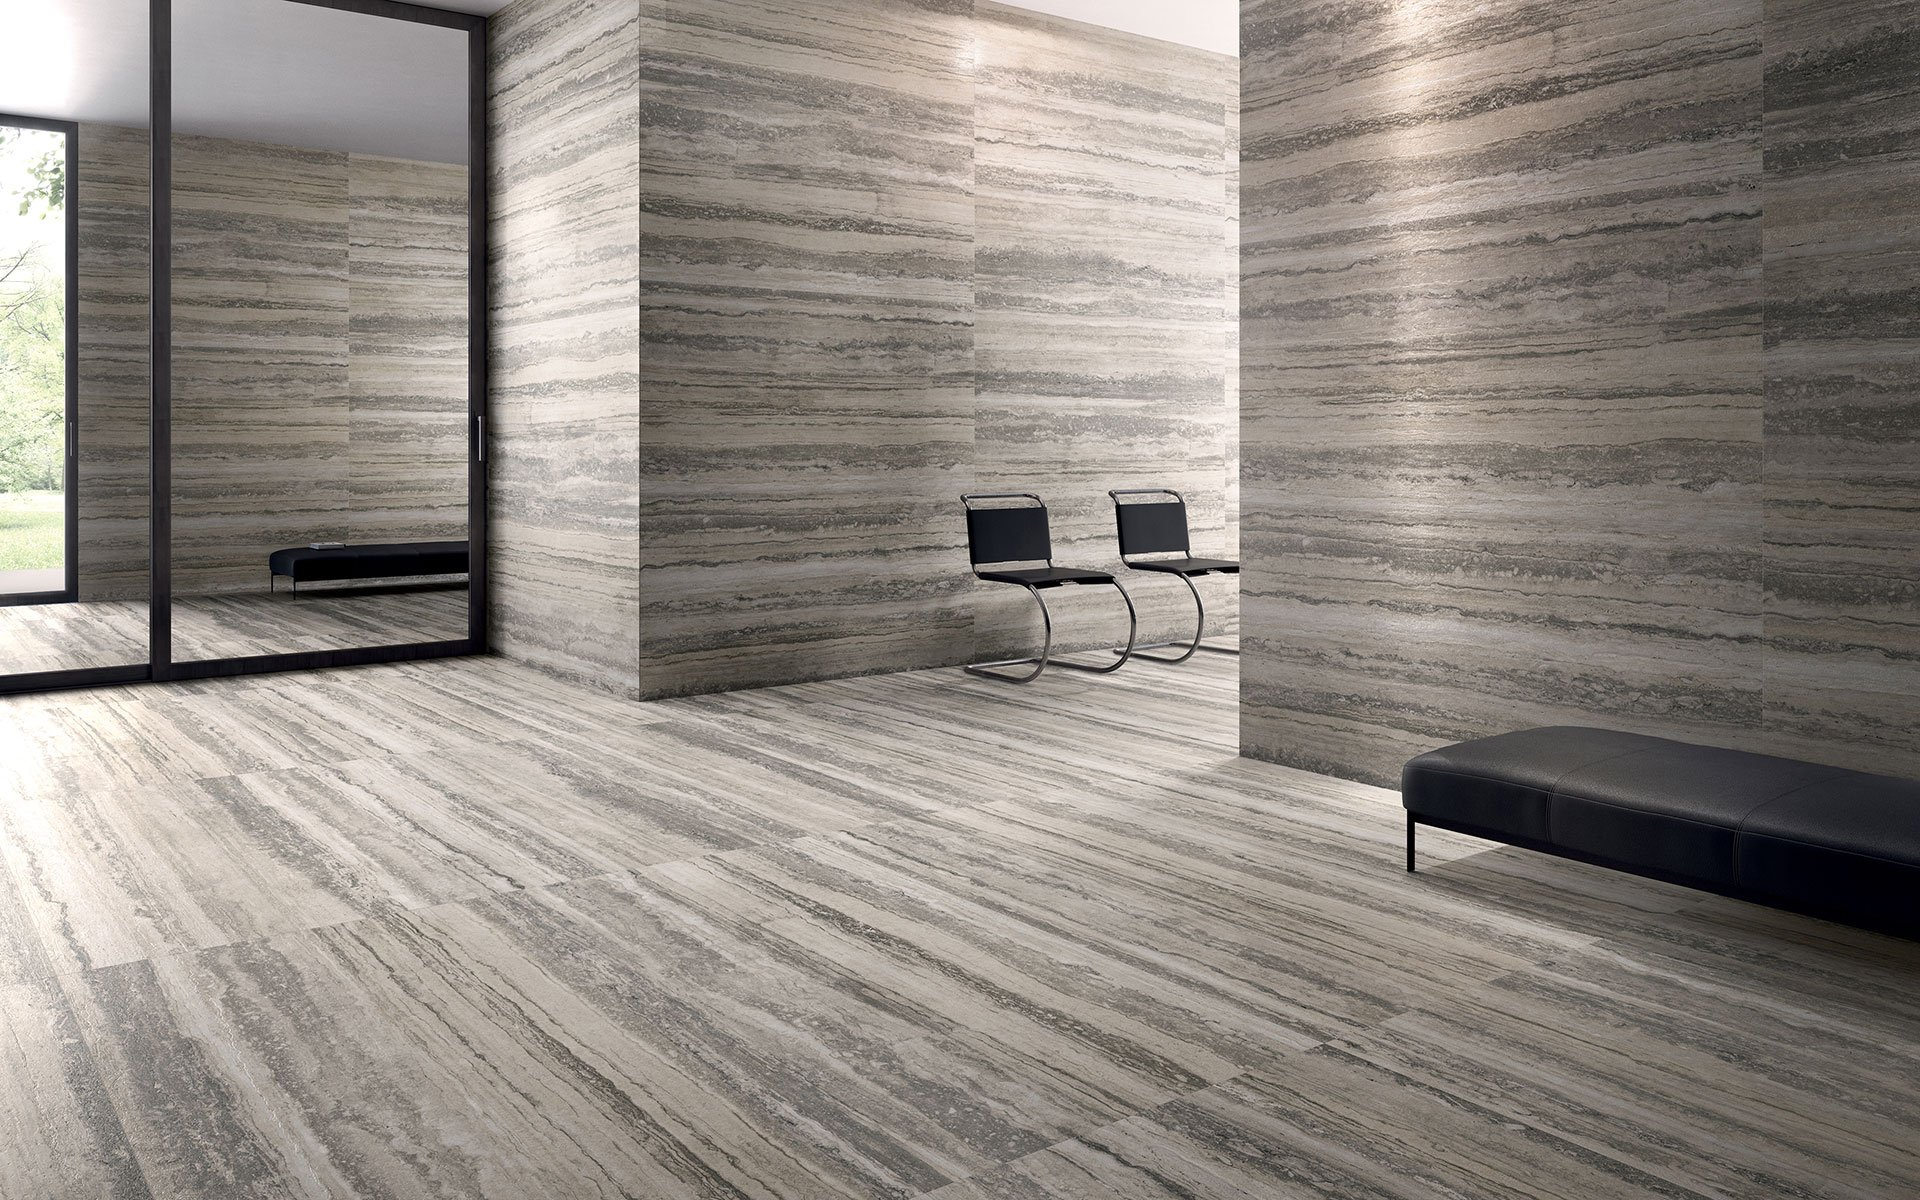 Showroom ceramiche frosinone fr centro ceramiche cassino for Lupin arredamenti